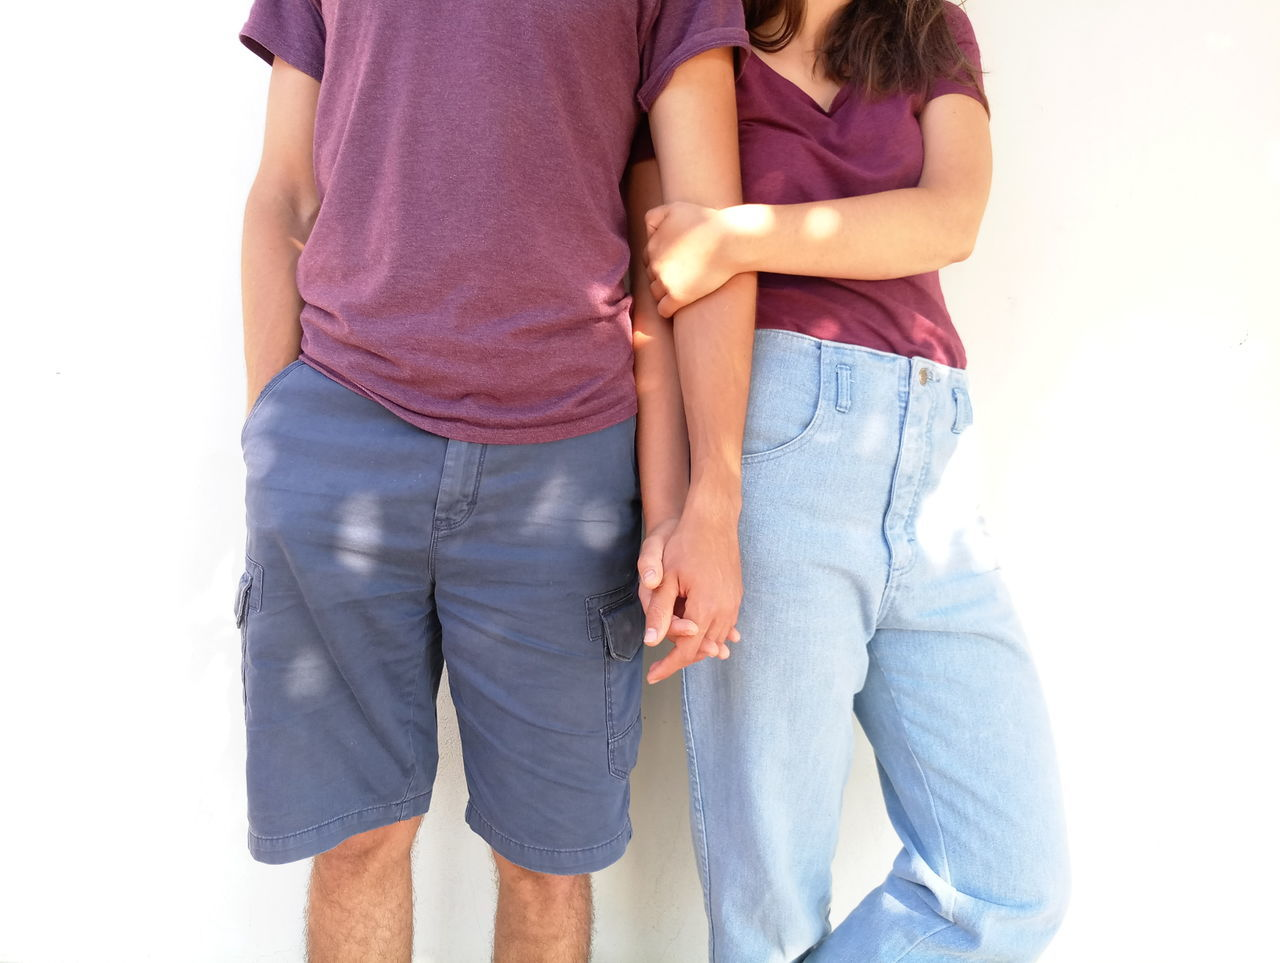 Midsection of couple holding hands against white wall